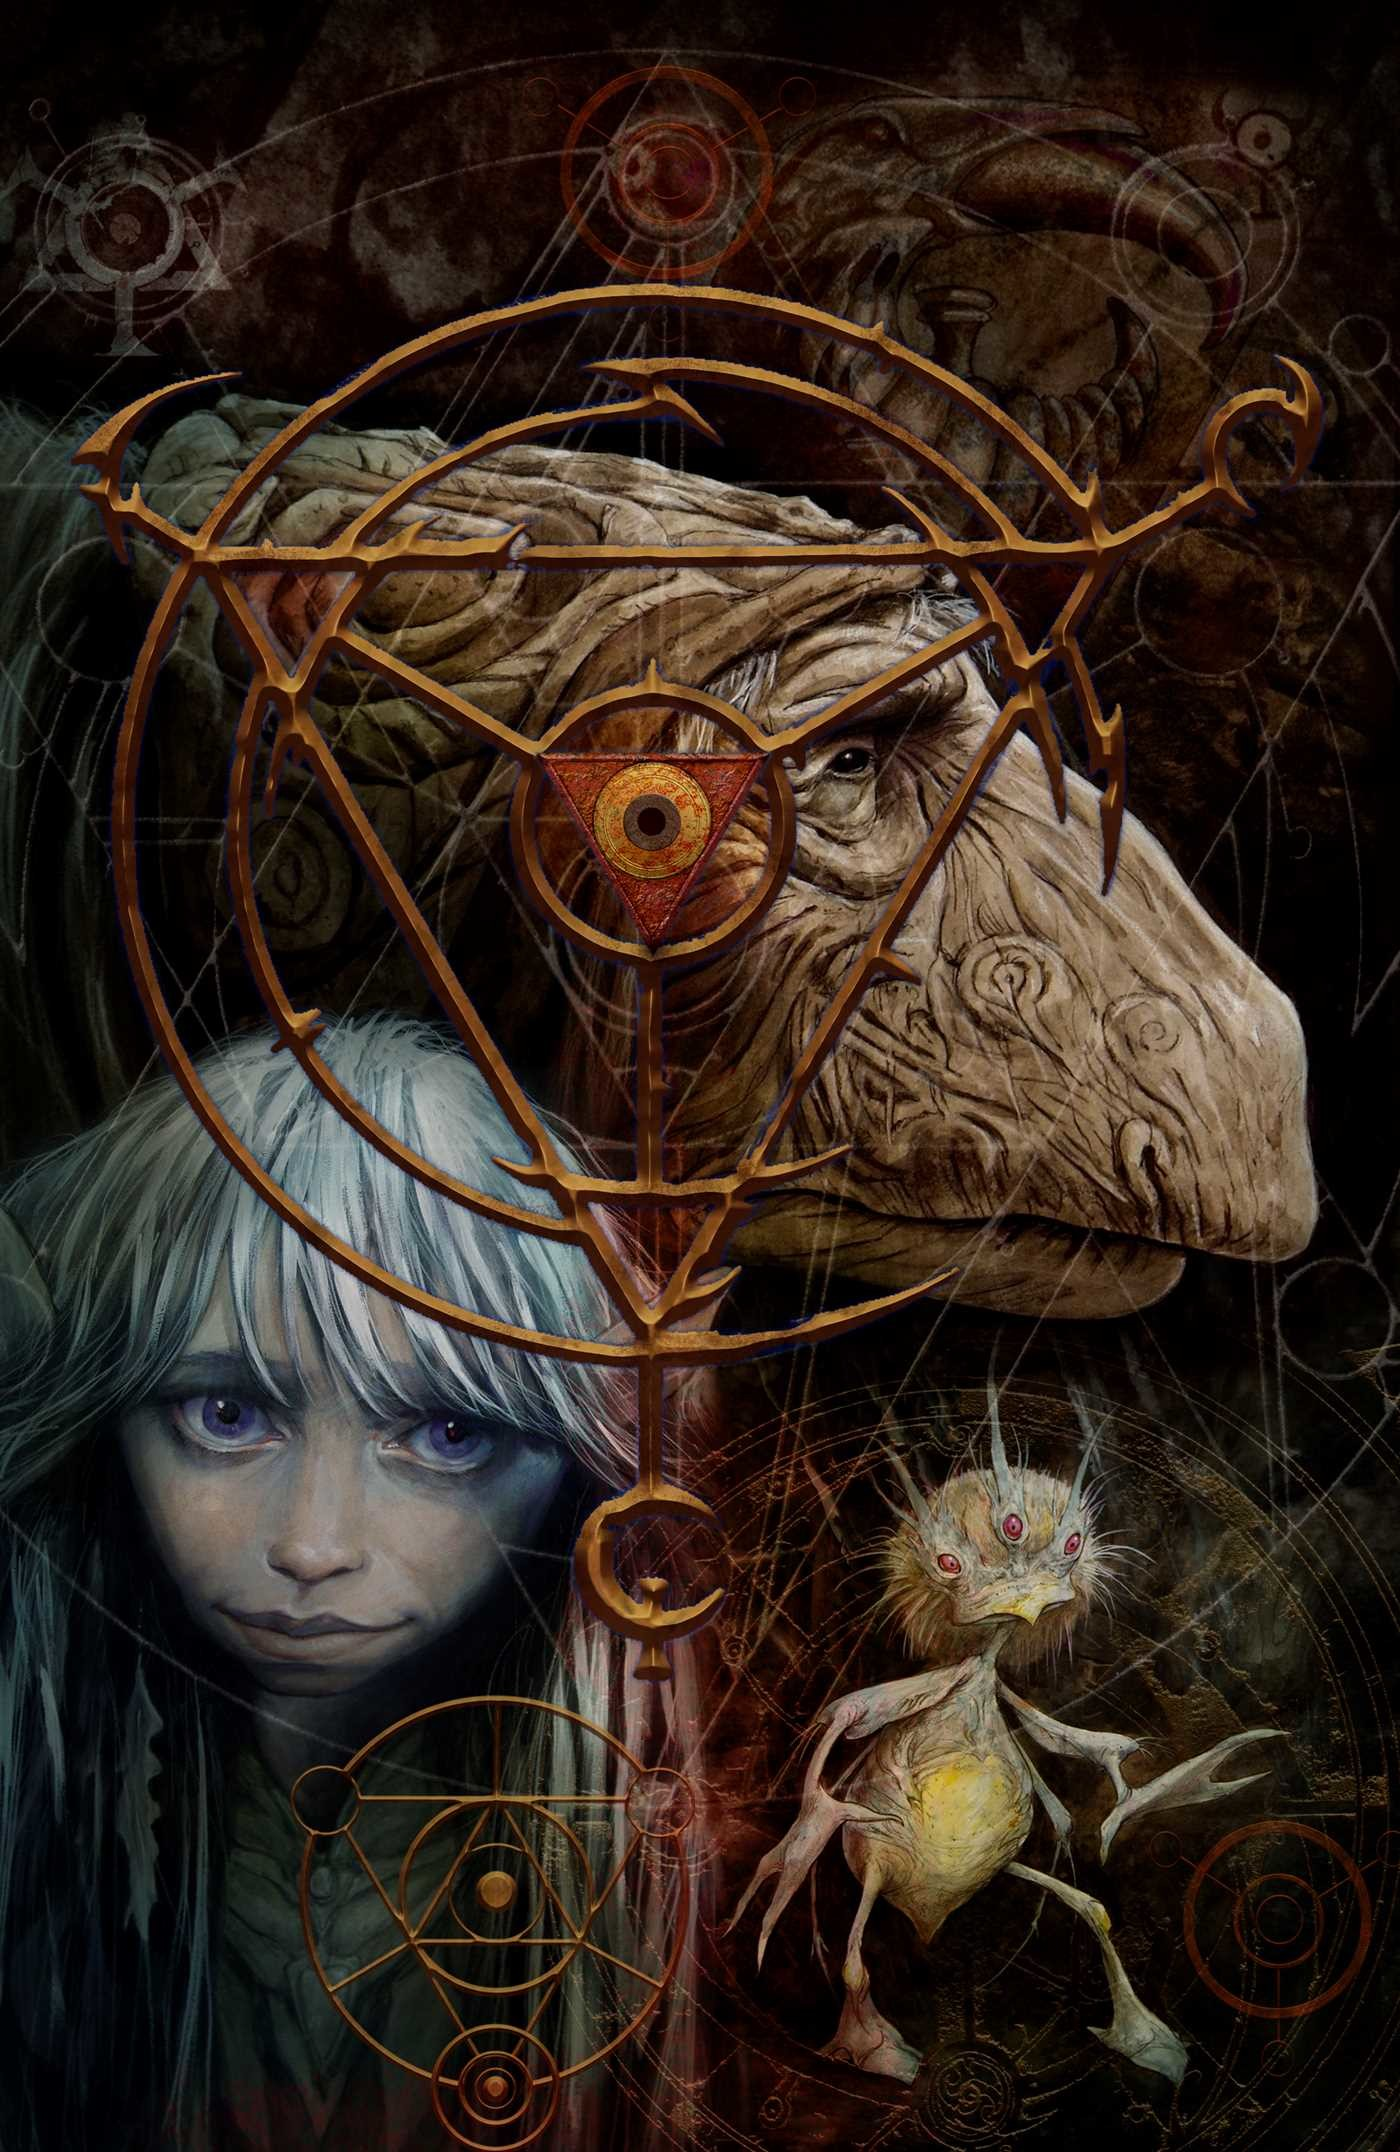 Jim hensons the dark crystal artist tribute 9781684151820.in01